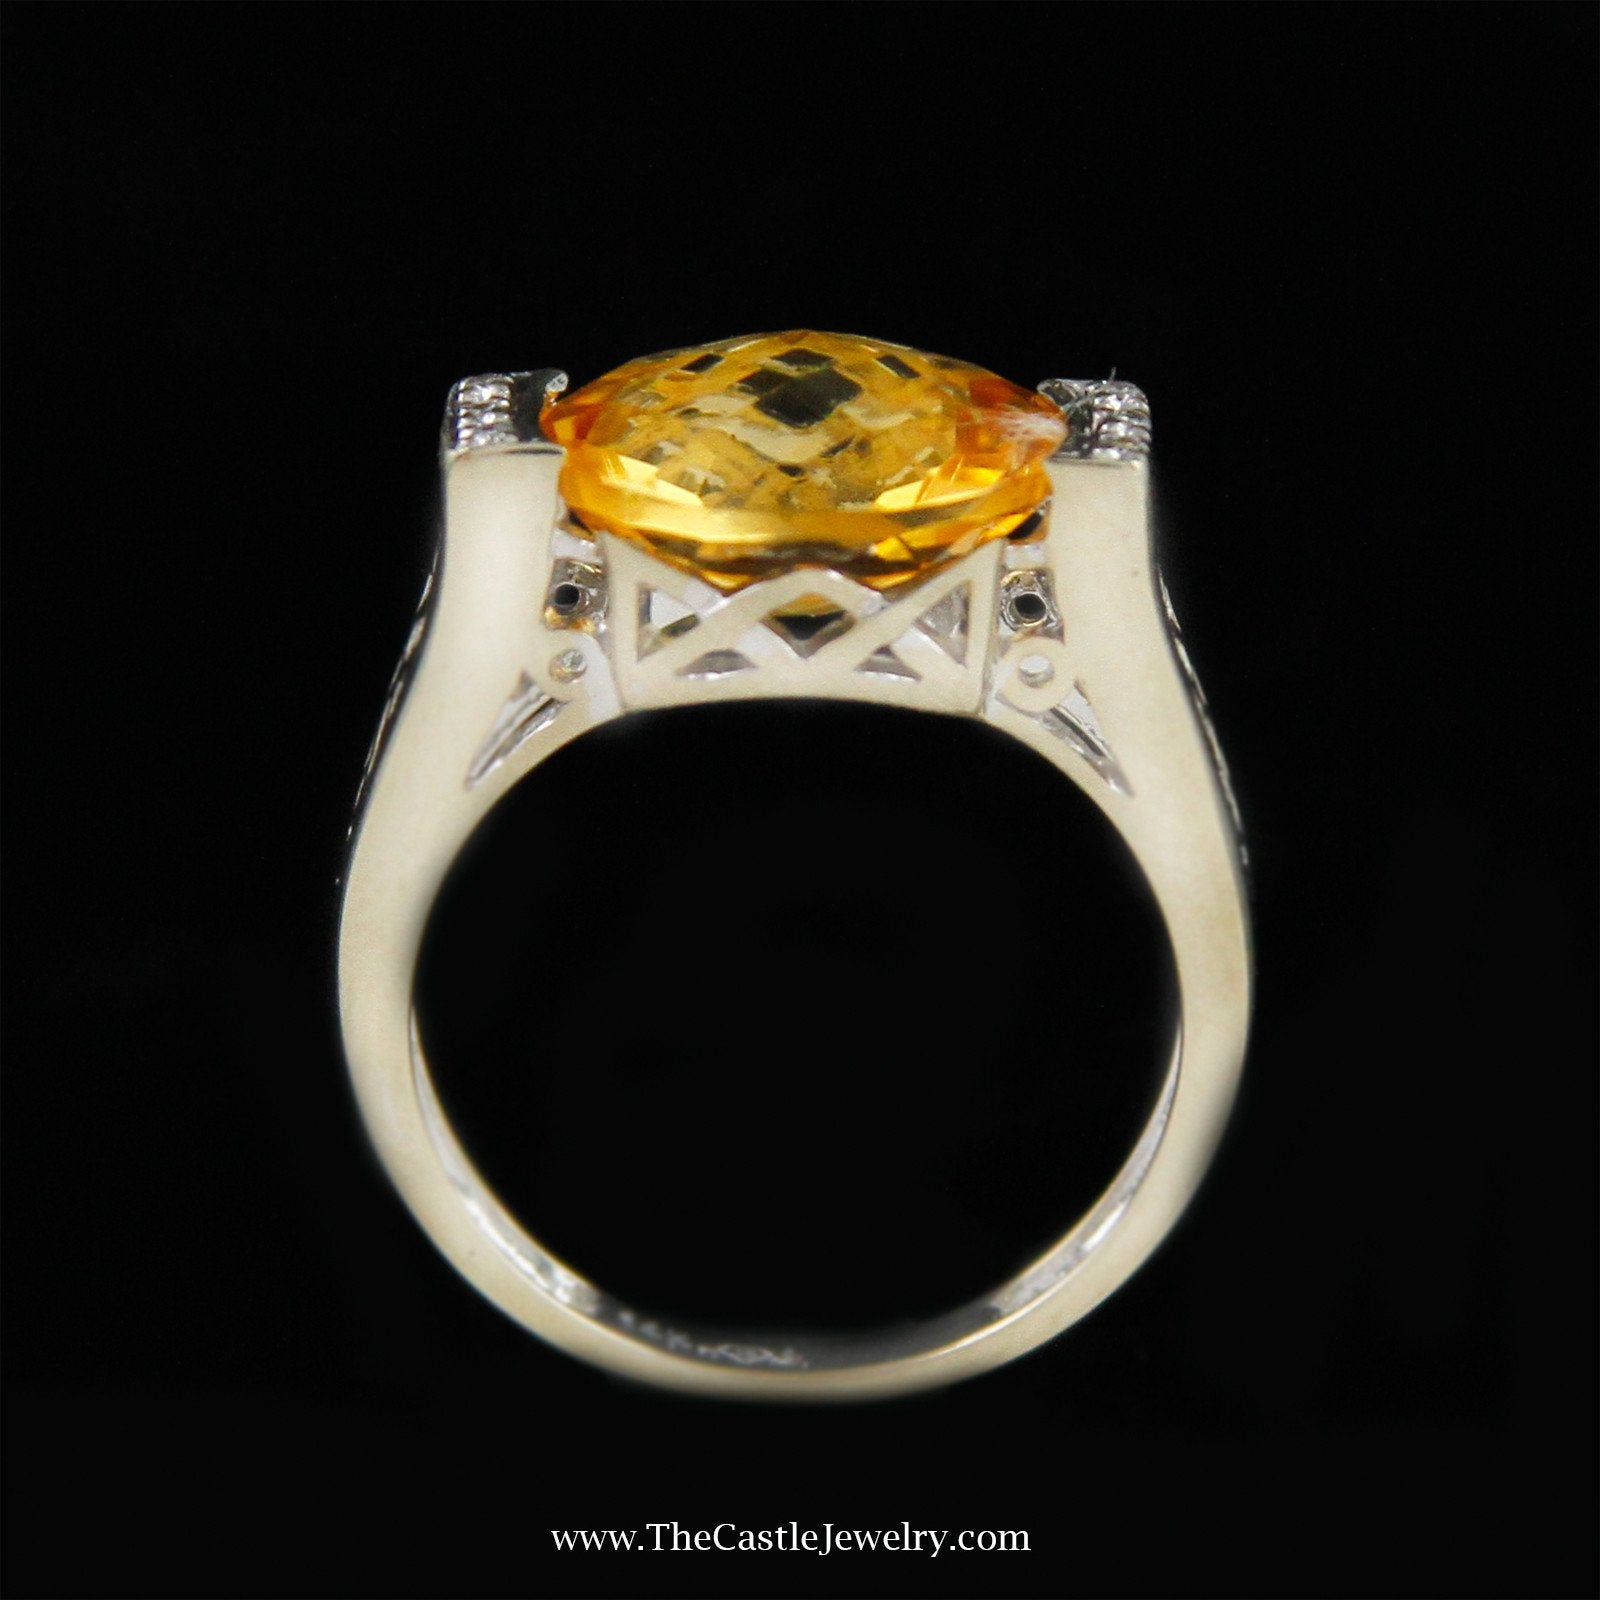 Oval Fantasy Cut Citrine Ring with Round Diamond Sides in 14K White Gold-1